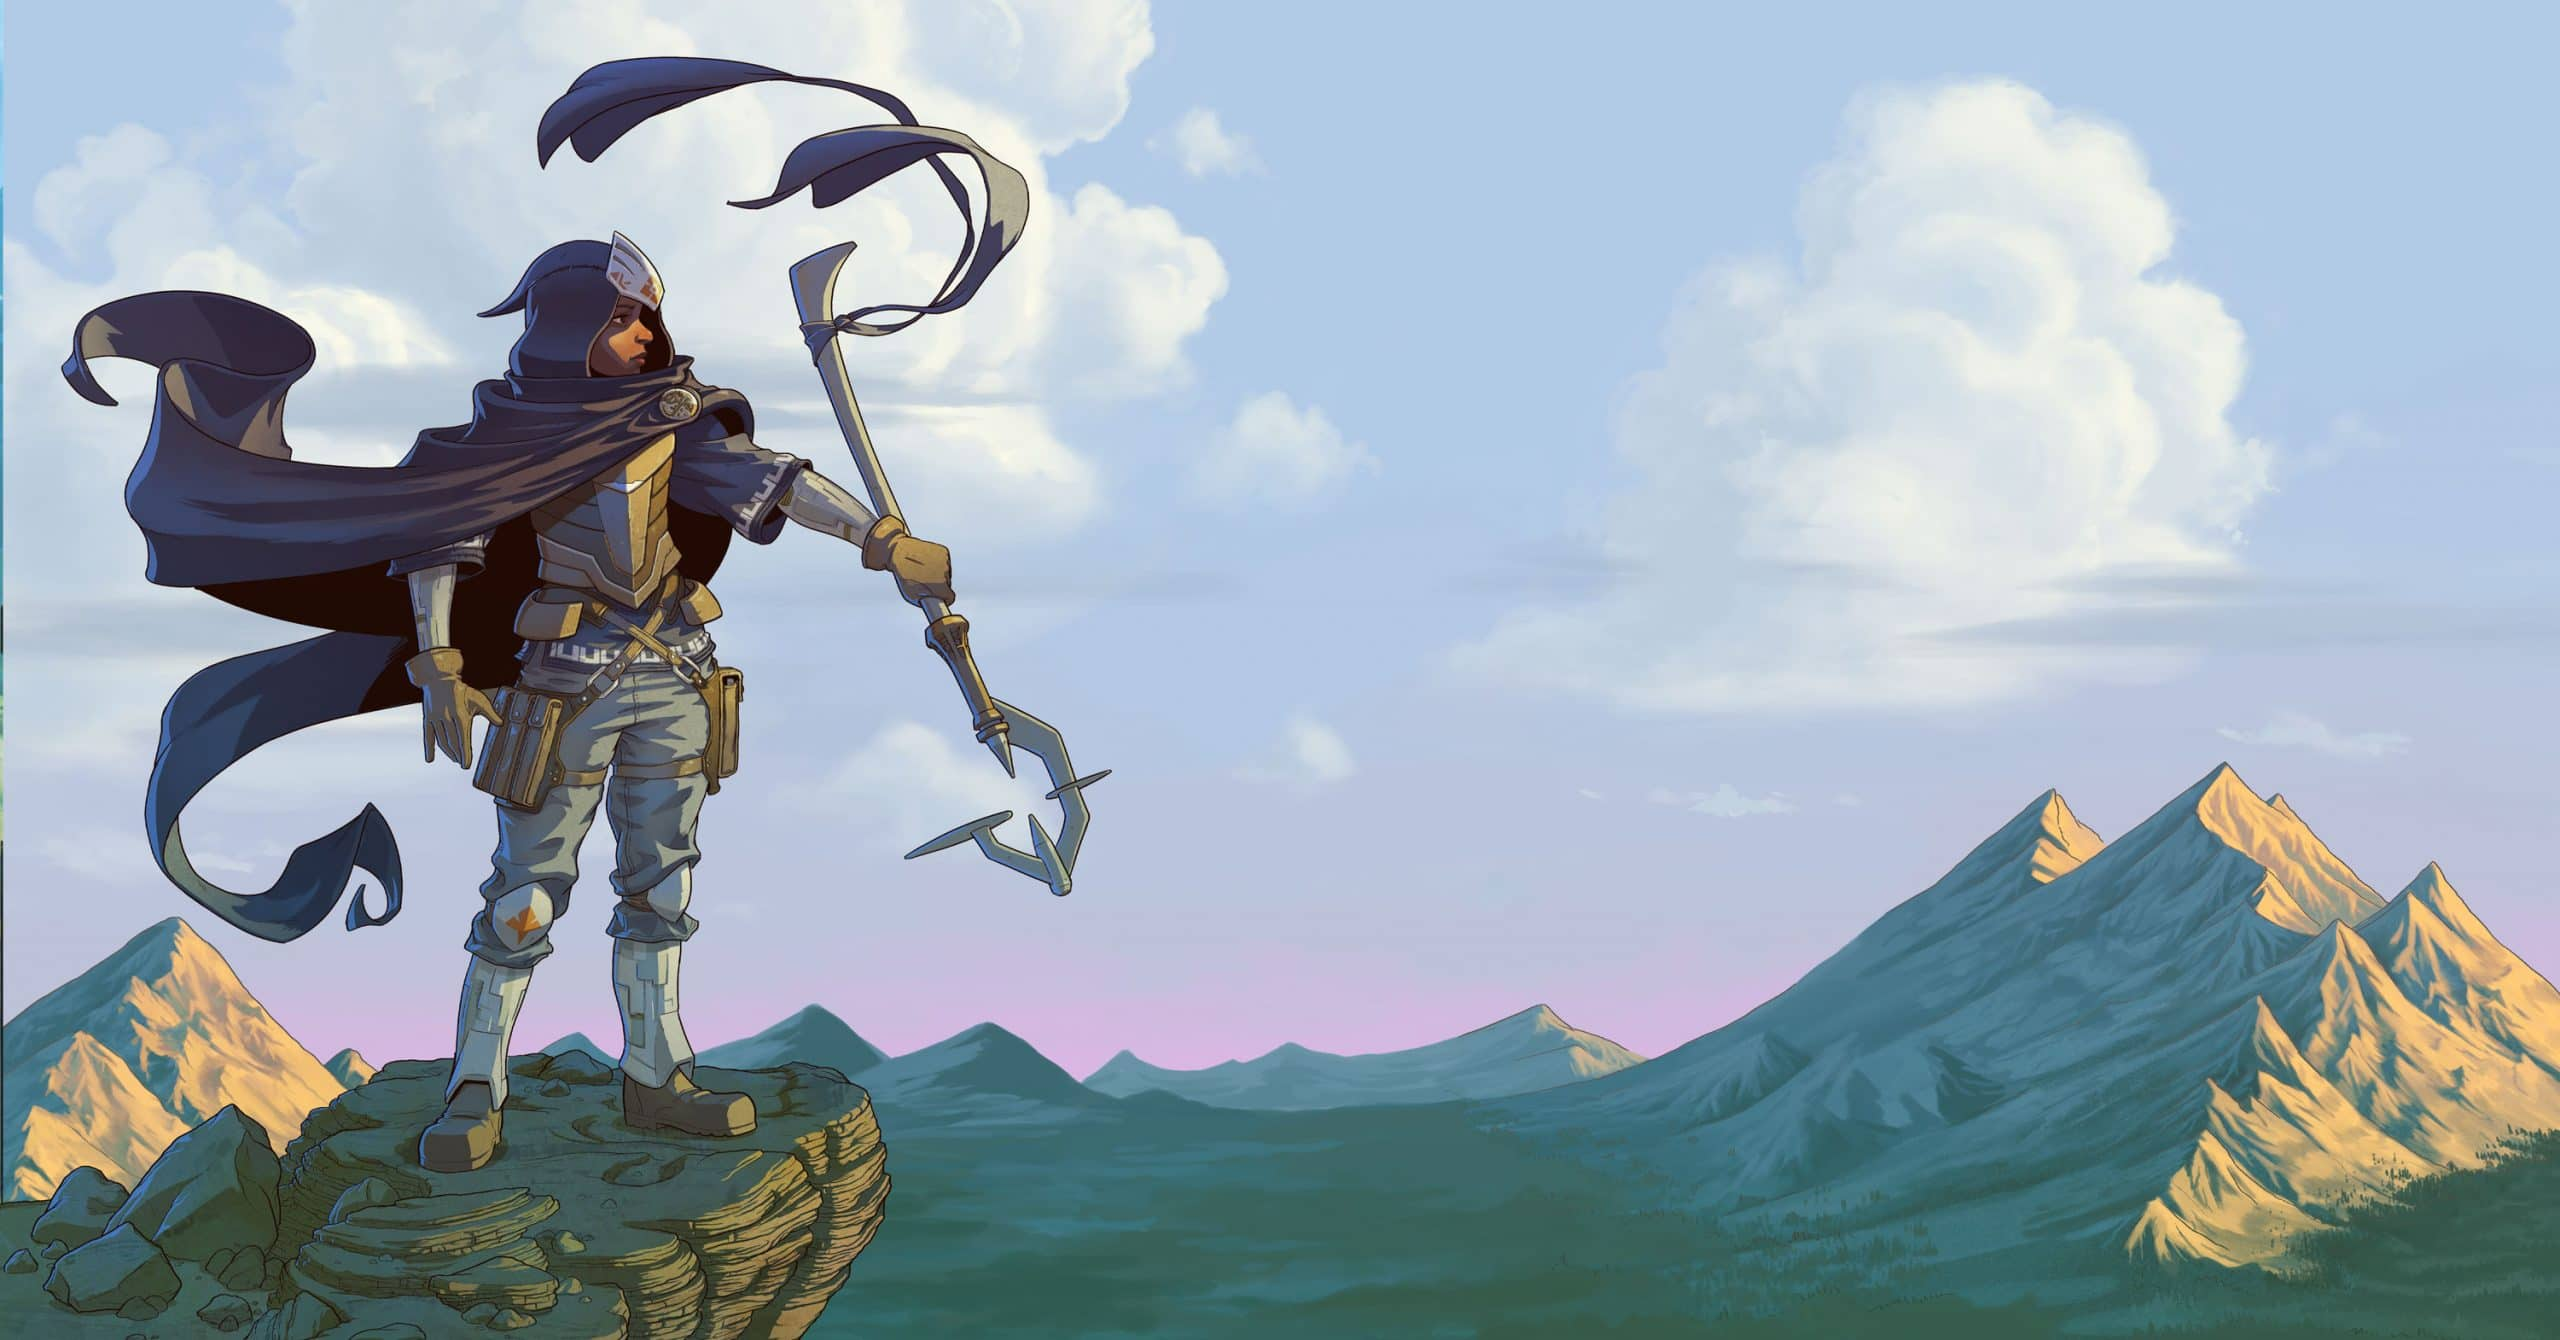 An Earthborne Ranger gazes across the valley atop a mountainside perch, steep-peaked mountains in the background.